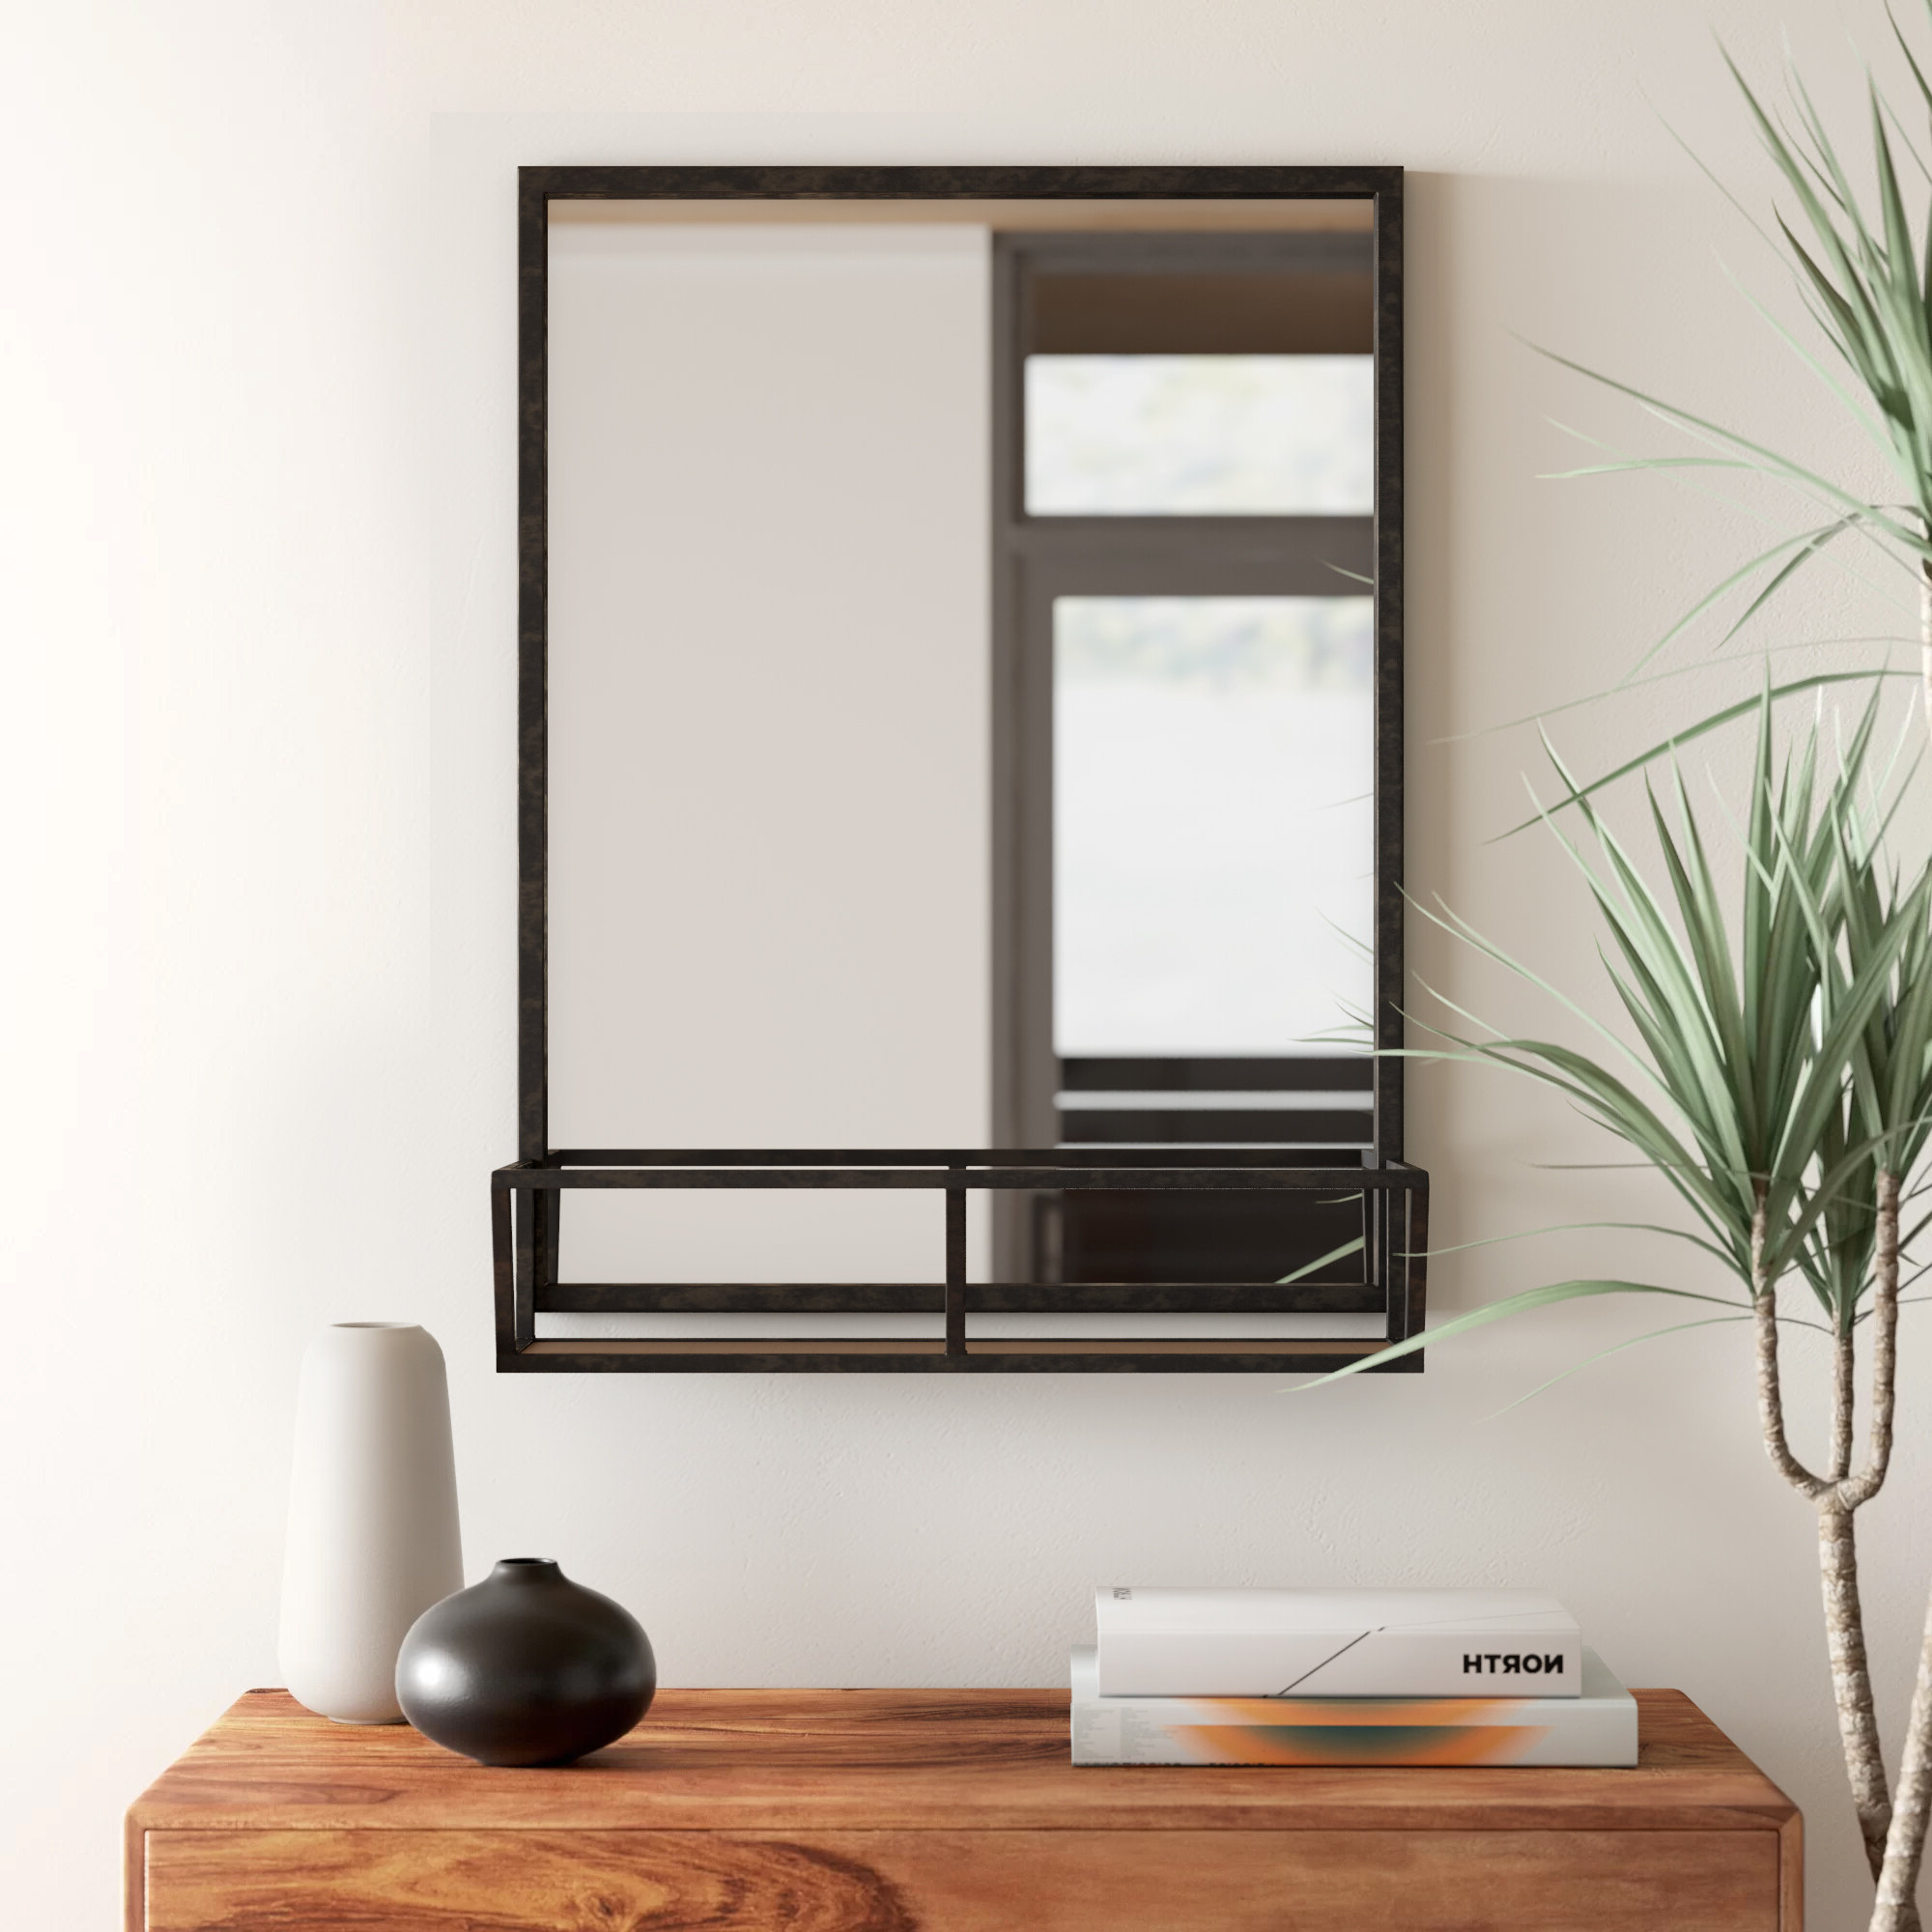 Kaufman Industrial Accent Mirror With Shelves Throughout Famous Austin Industrial Accent Mirrors (View 11 of 20)